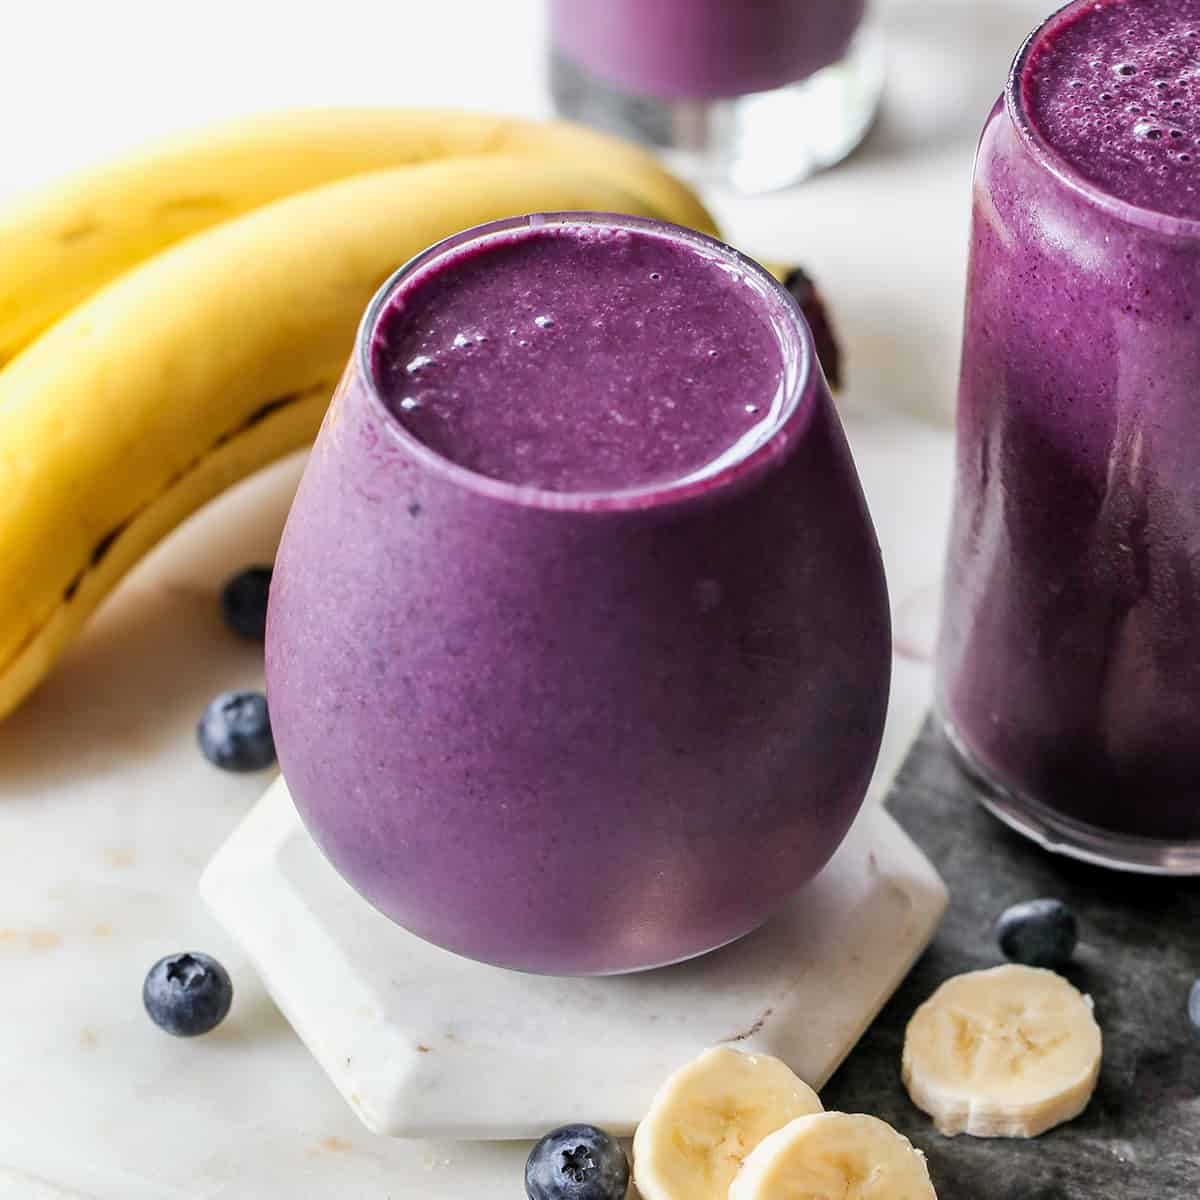 front view of a glass filled with blueberry smoothie with bananas and blueberries around it